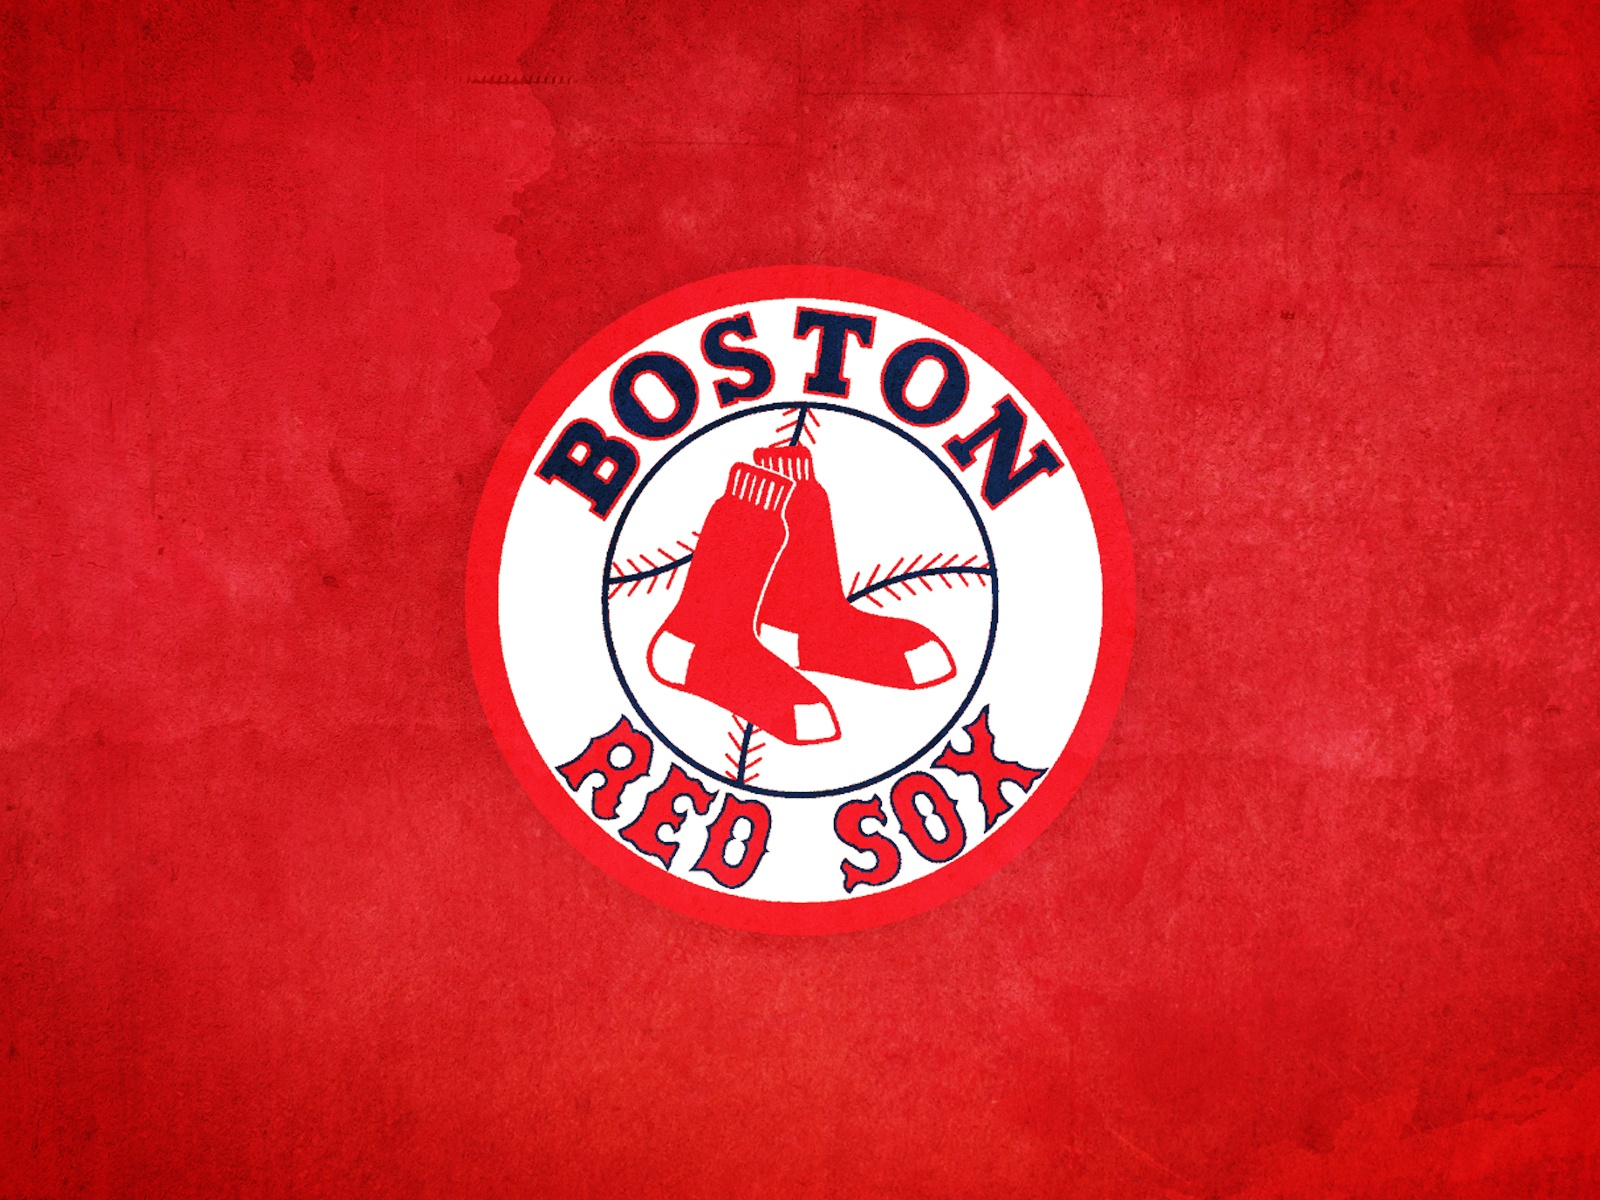 Boston Red Sox Res: 1600x1200 / Size:639kb. Views: 10803. More MLB wallpapers